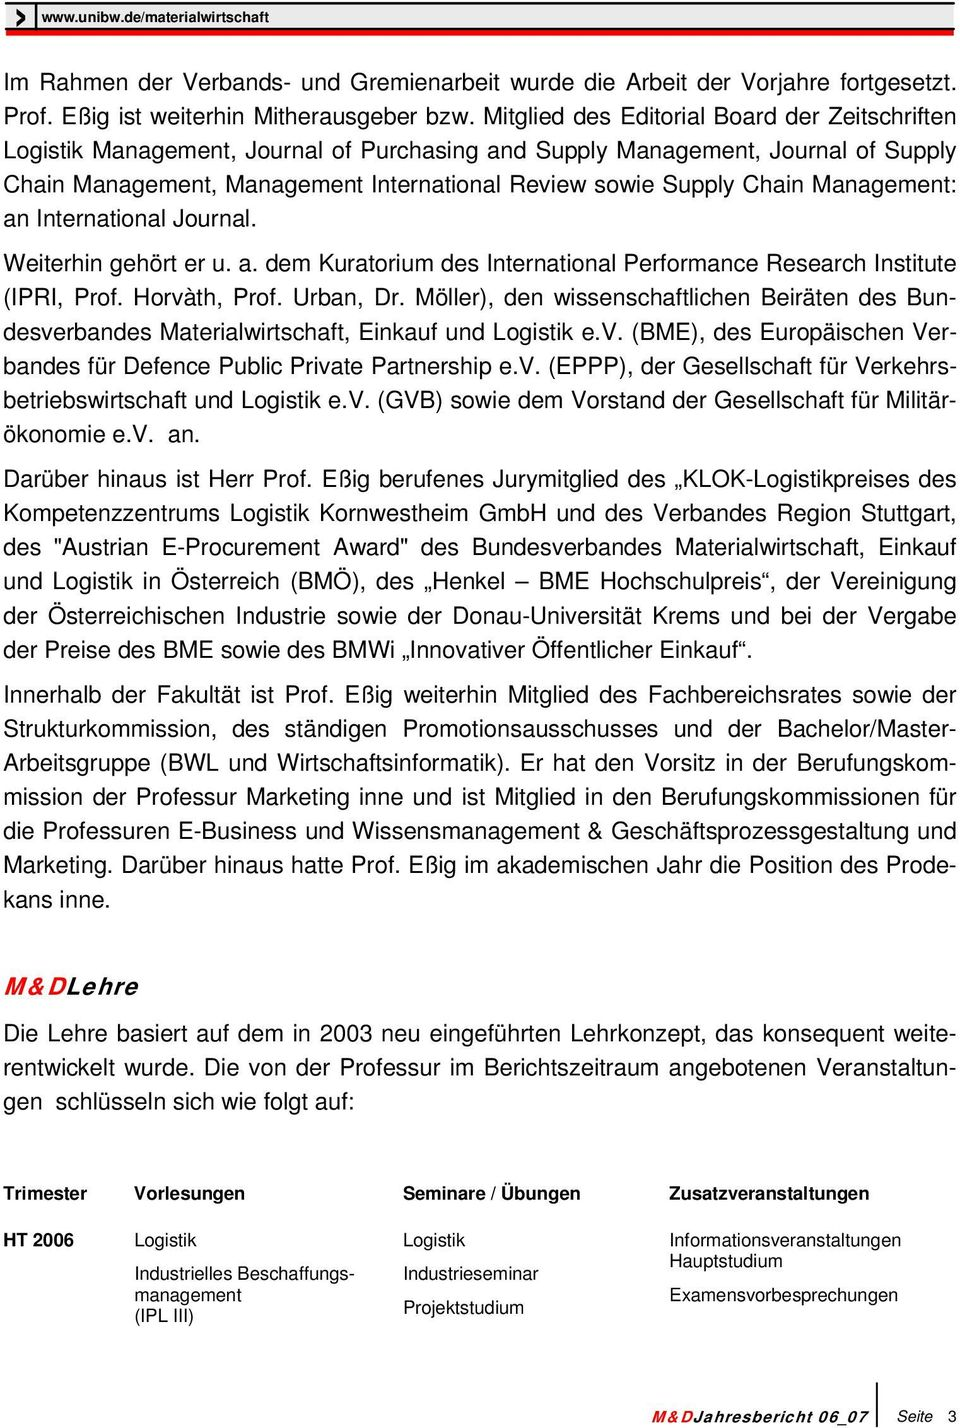 Management: an International Journal. Weiterhin gehört er u. a. dem Kuratorium des International Performance Research Institute (IPRI, Prof. Horvàth, Prof. Urban, Dr.